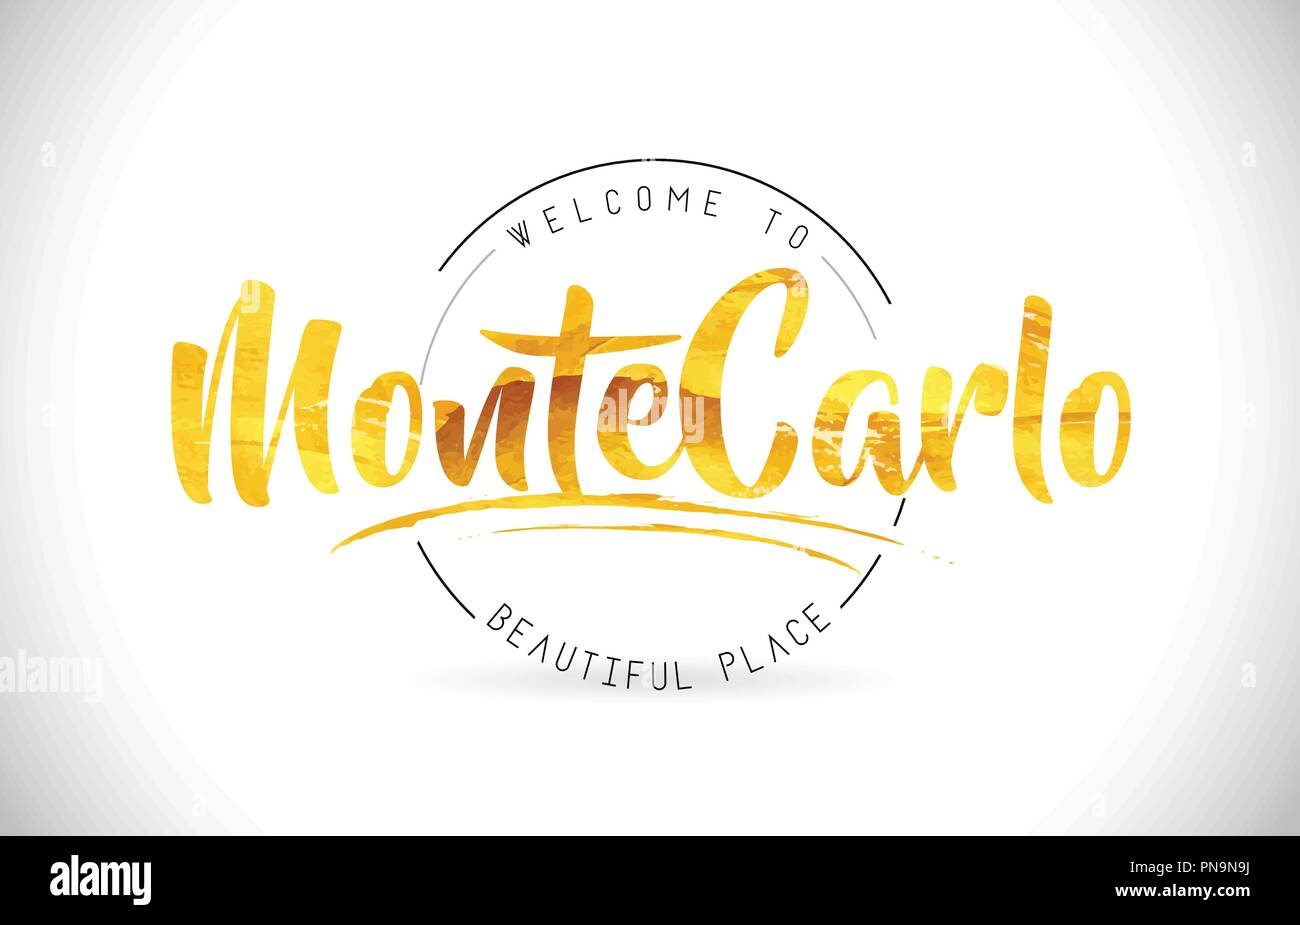 MonteCarlo Welcome To Word Text with Handwritten Font and Golden Texture Design Illustration Vector. - Stock Vector